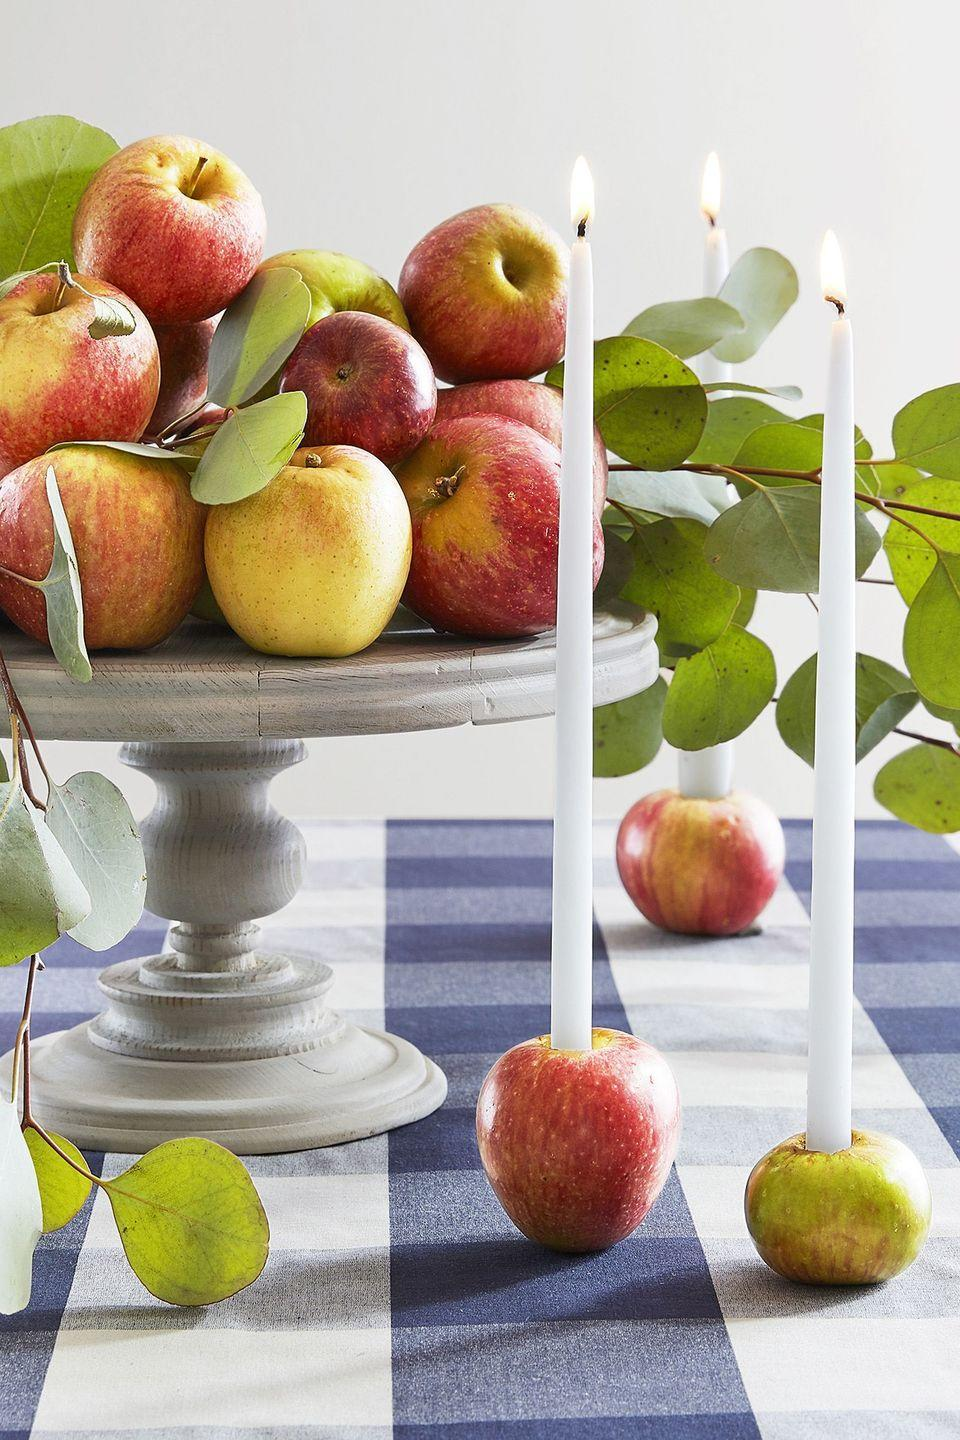 "<p>Fill your home with the aromas of autumn with a homemade scent or candle, like this apple candlestick combo.</p><p><strong><a href=""https://www.countryliving.com/diy-crafts/g2009/fall-centerpieces/"" rel=""nofollow noopener"" target=""_blank"" data-ylk=""slk:Get the tutorial"" class=""link rapid-noclick-resp"">Get the tutorial</a>.</strong></p>"